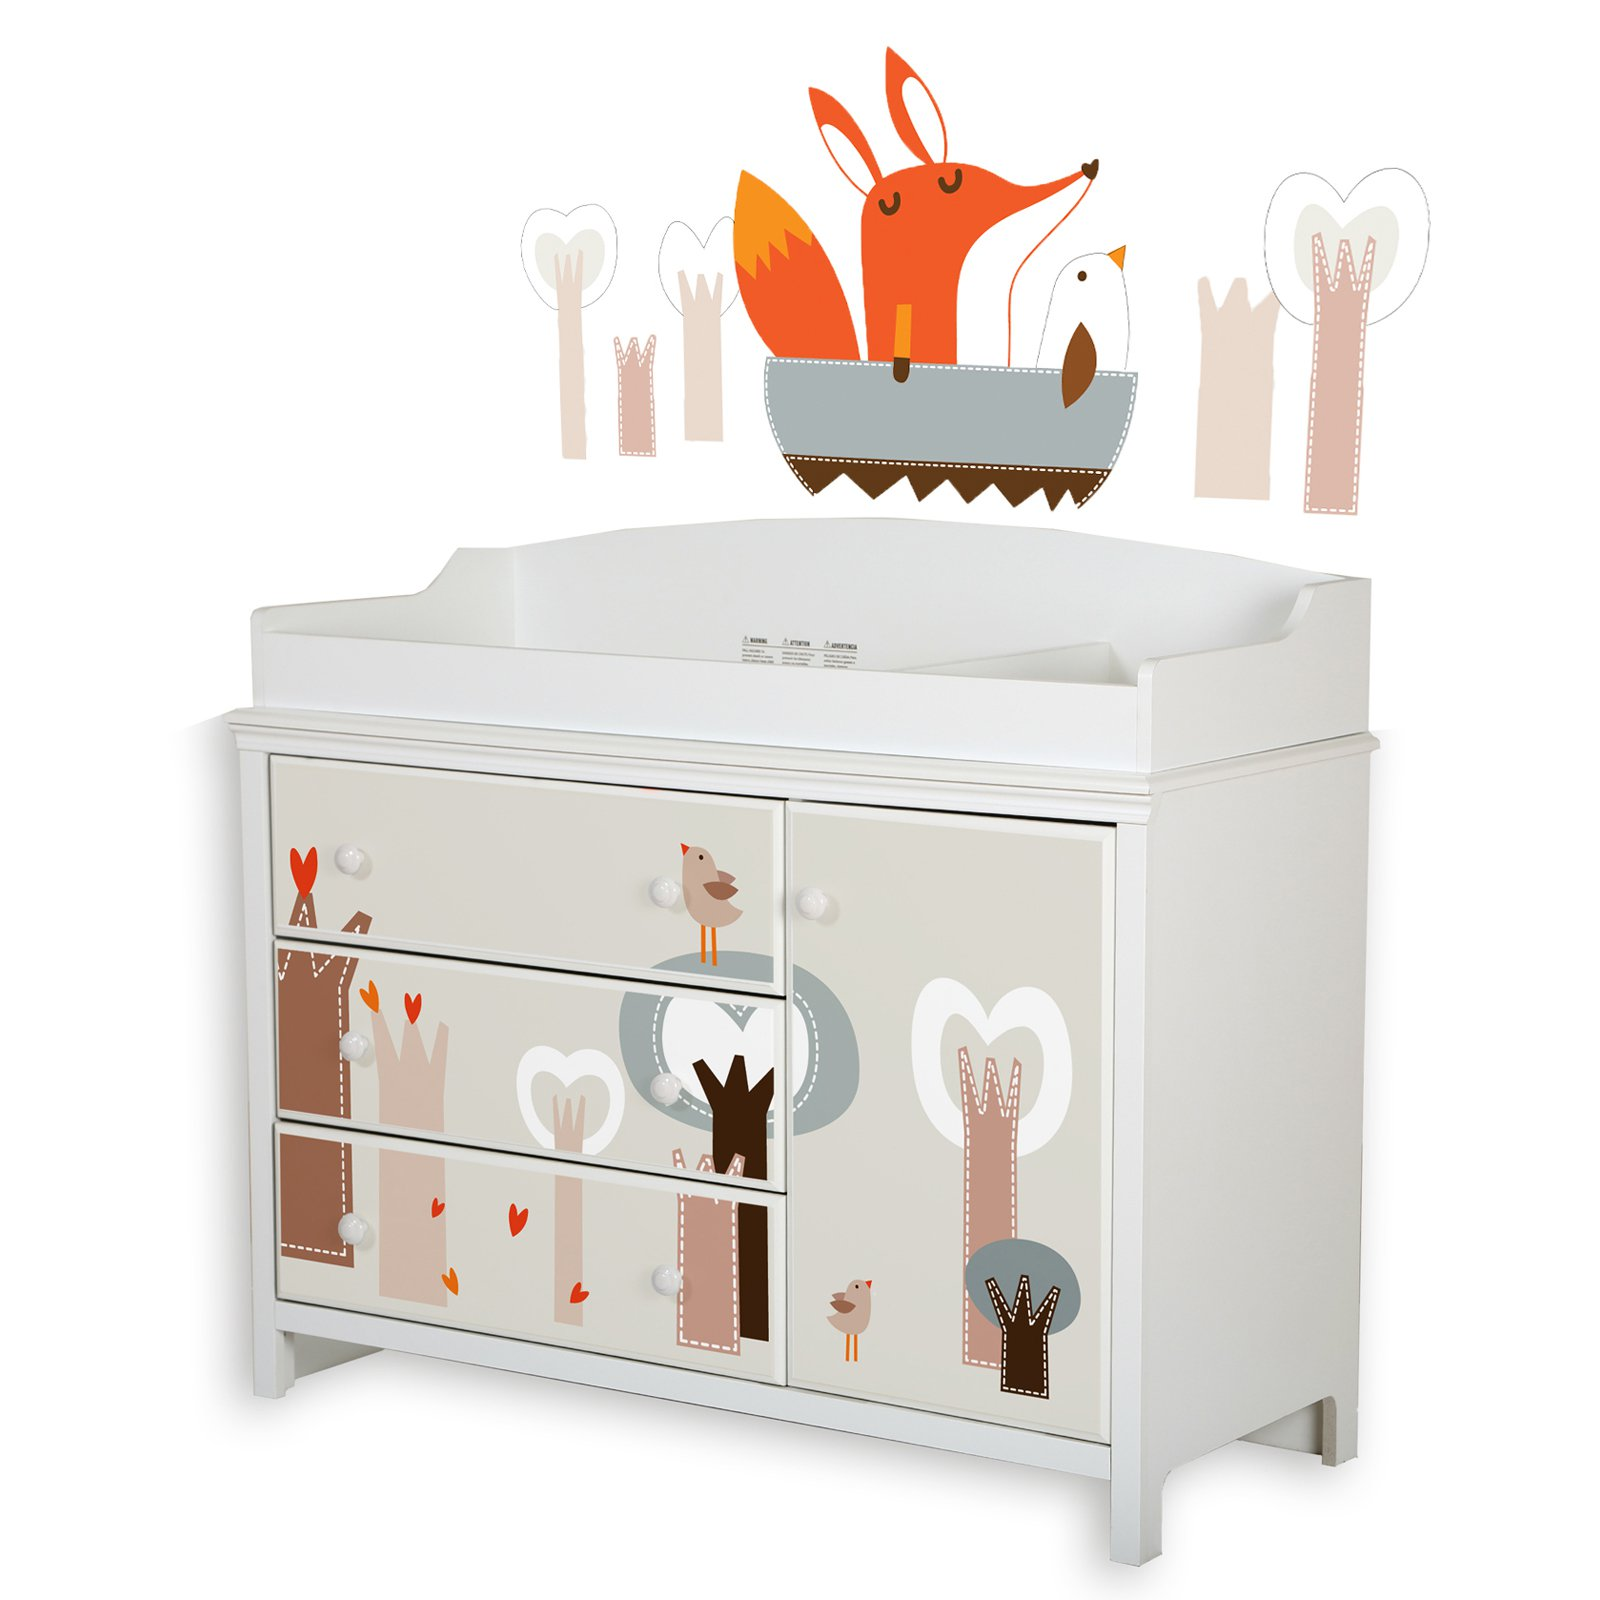 South Shore Cotton Candy Changing Table with Wall Decals Set by South Shore Furniture